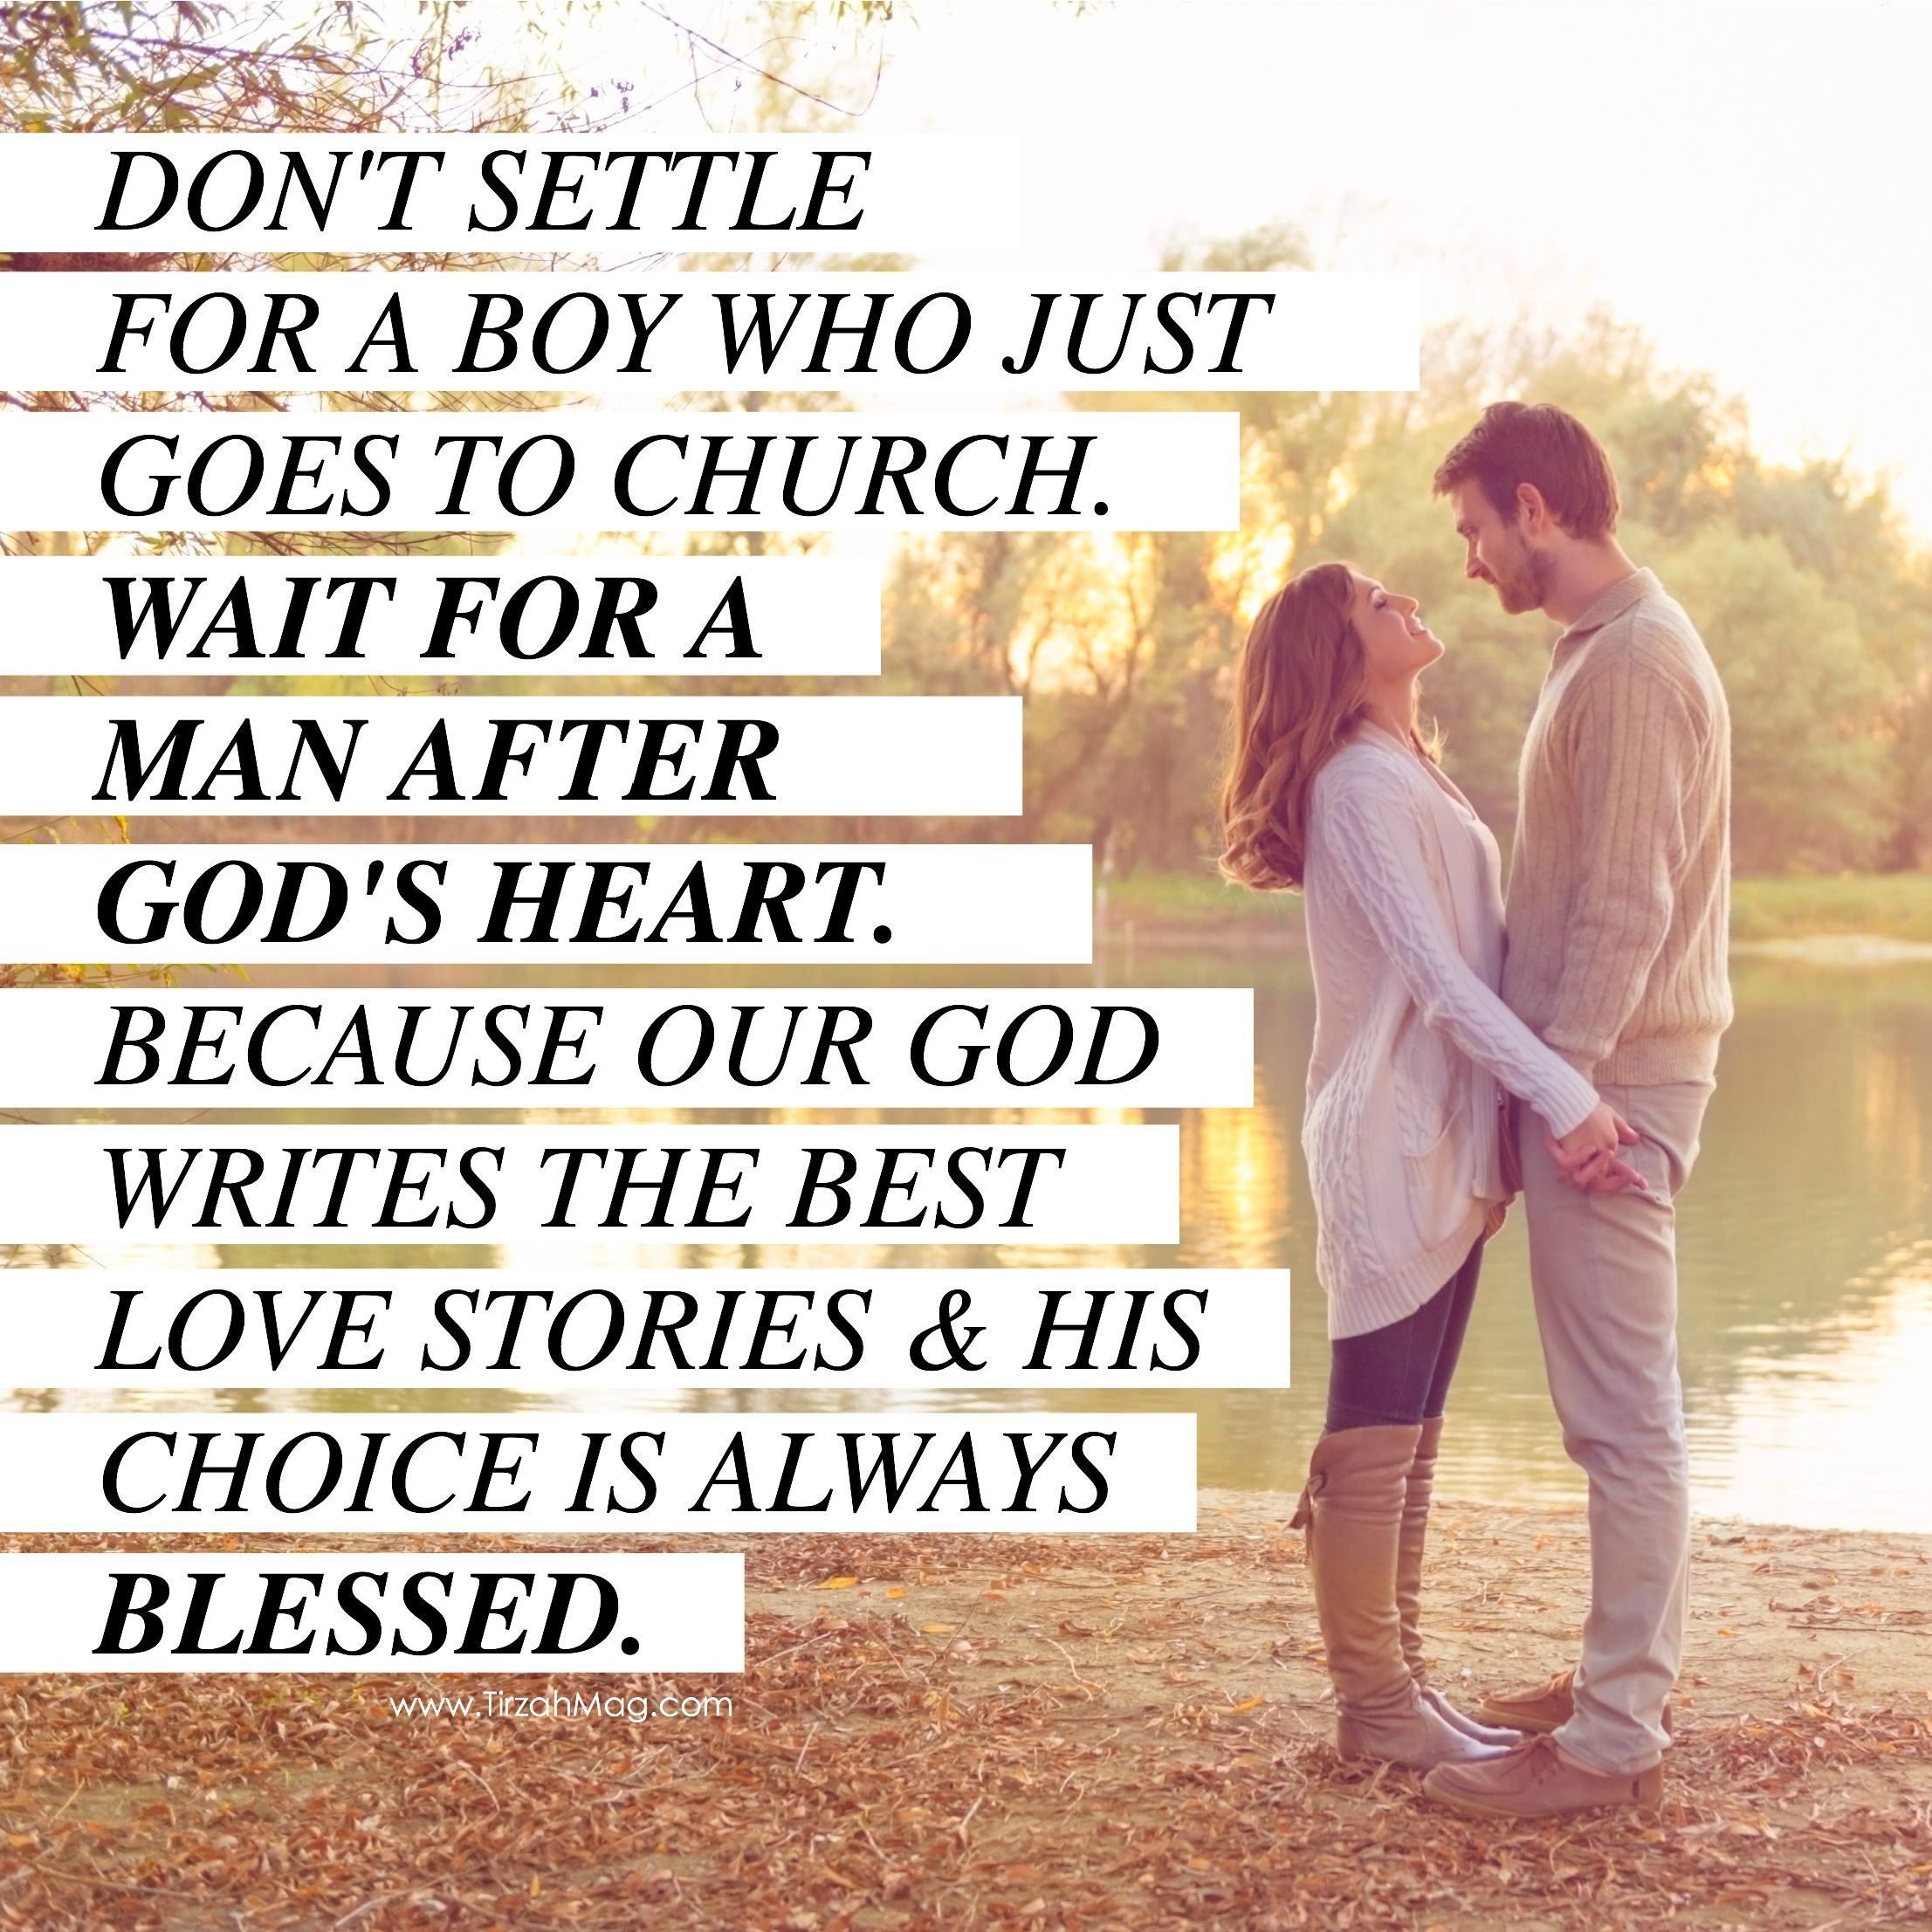 Quotes About Waiting On God Don't Settle For Second Best Are You Still Waiting For Your Prince